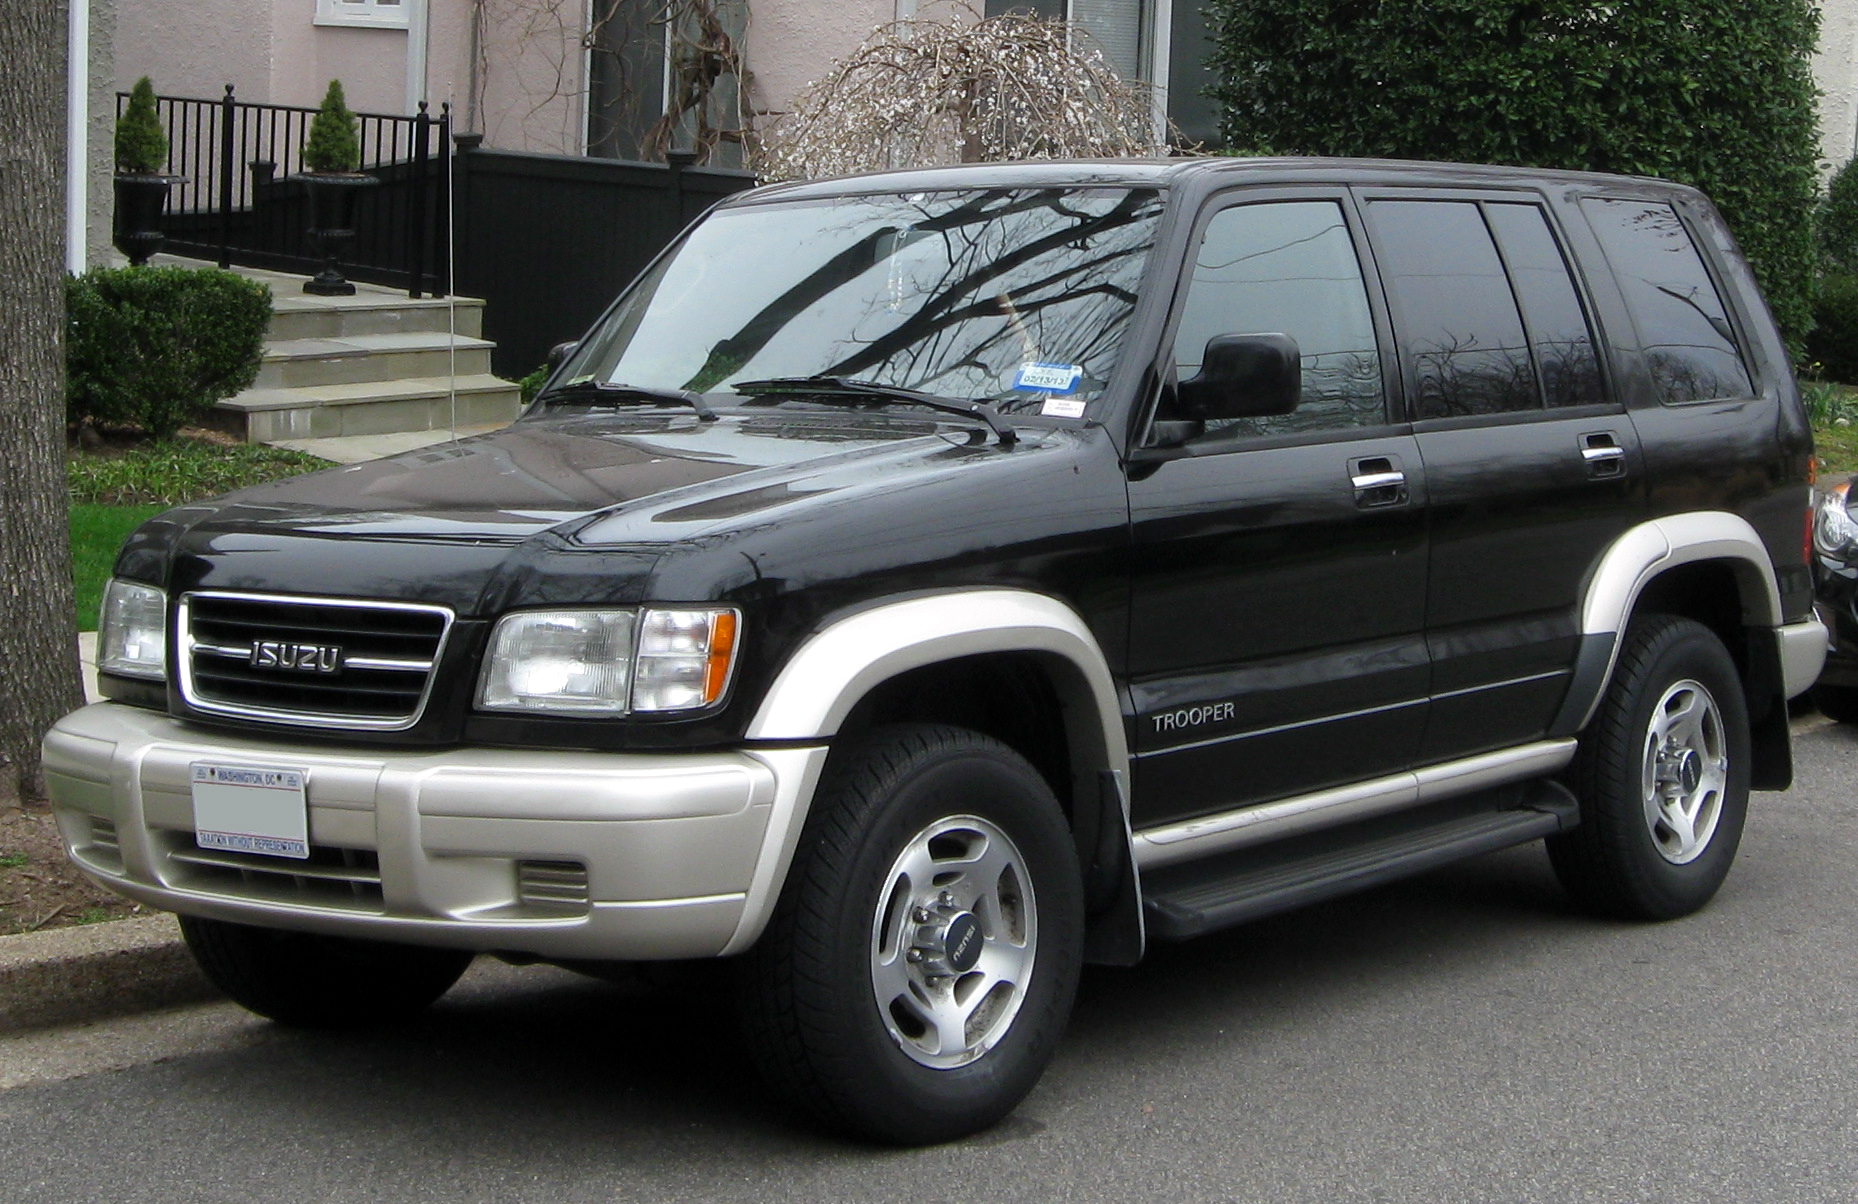 Isuzu Trooper Technical Specifications And Fuel Economy